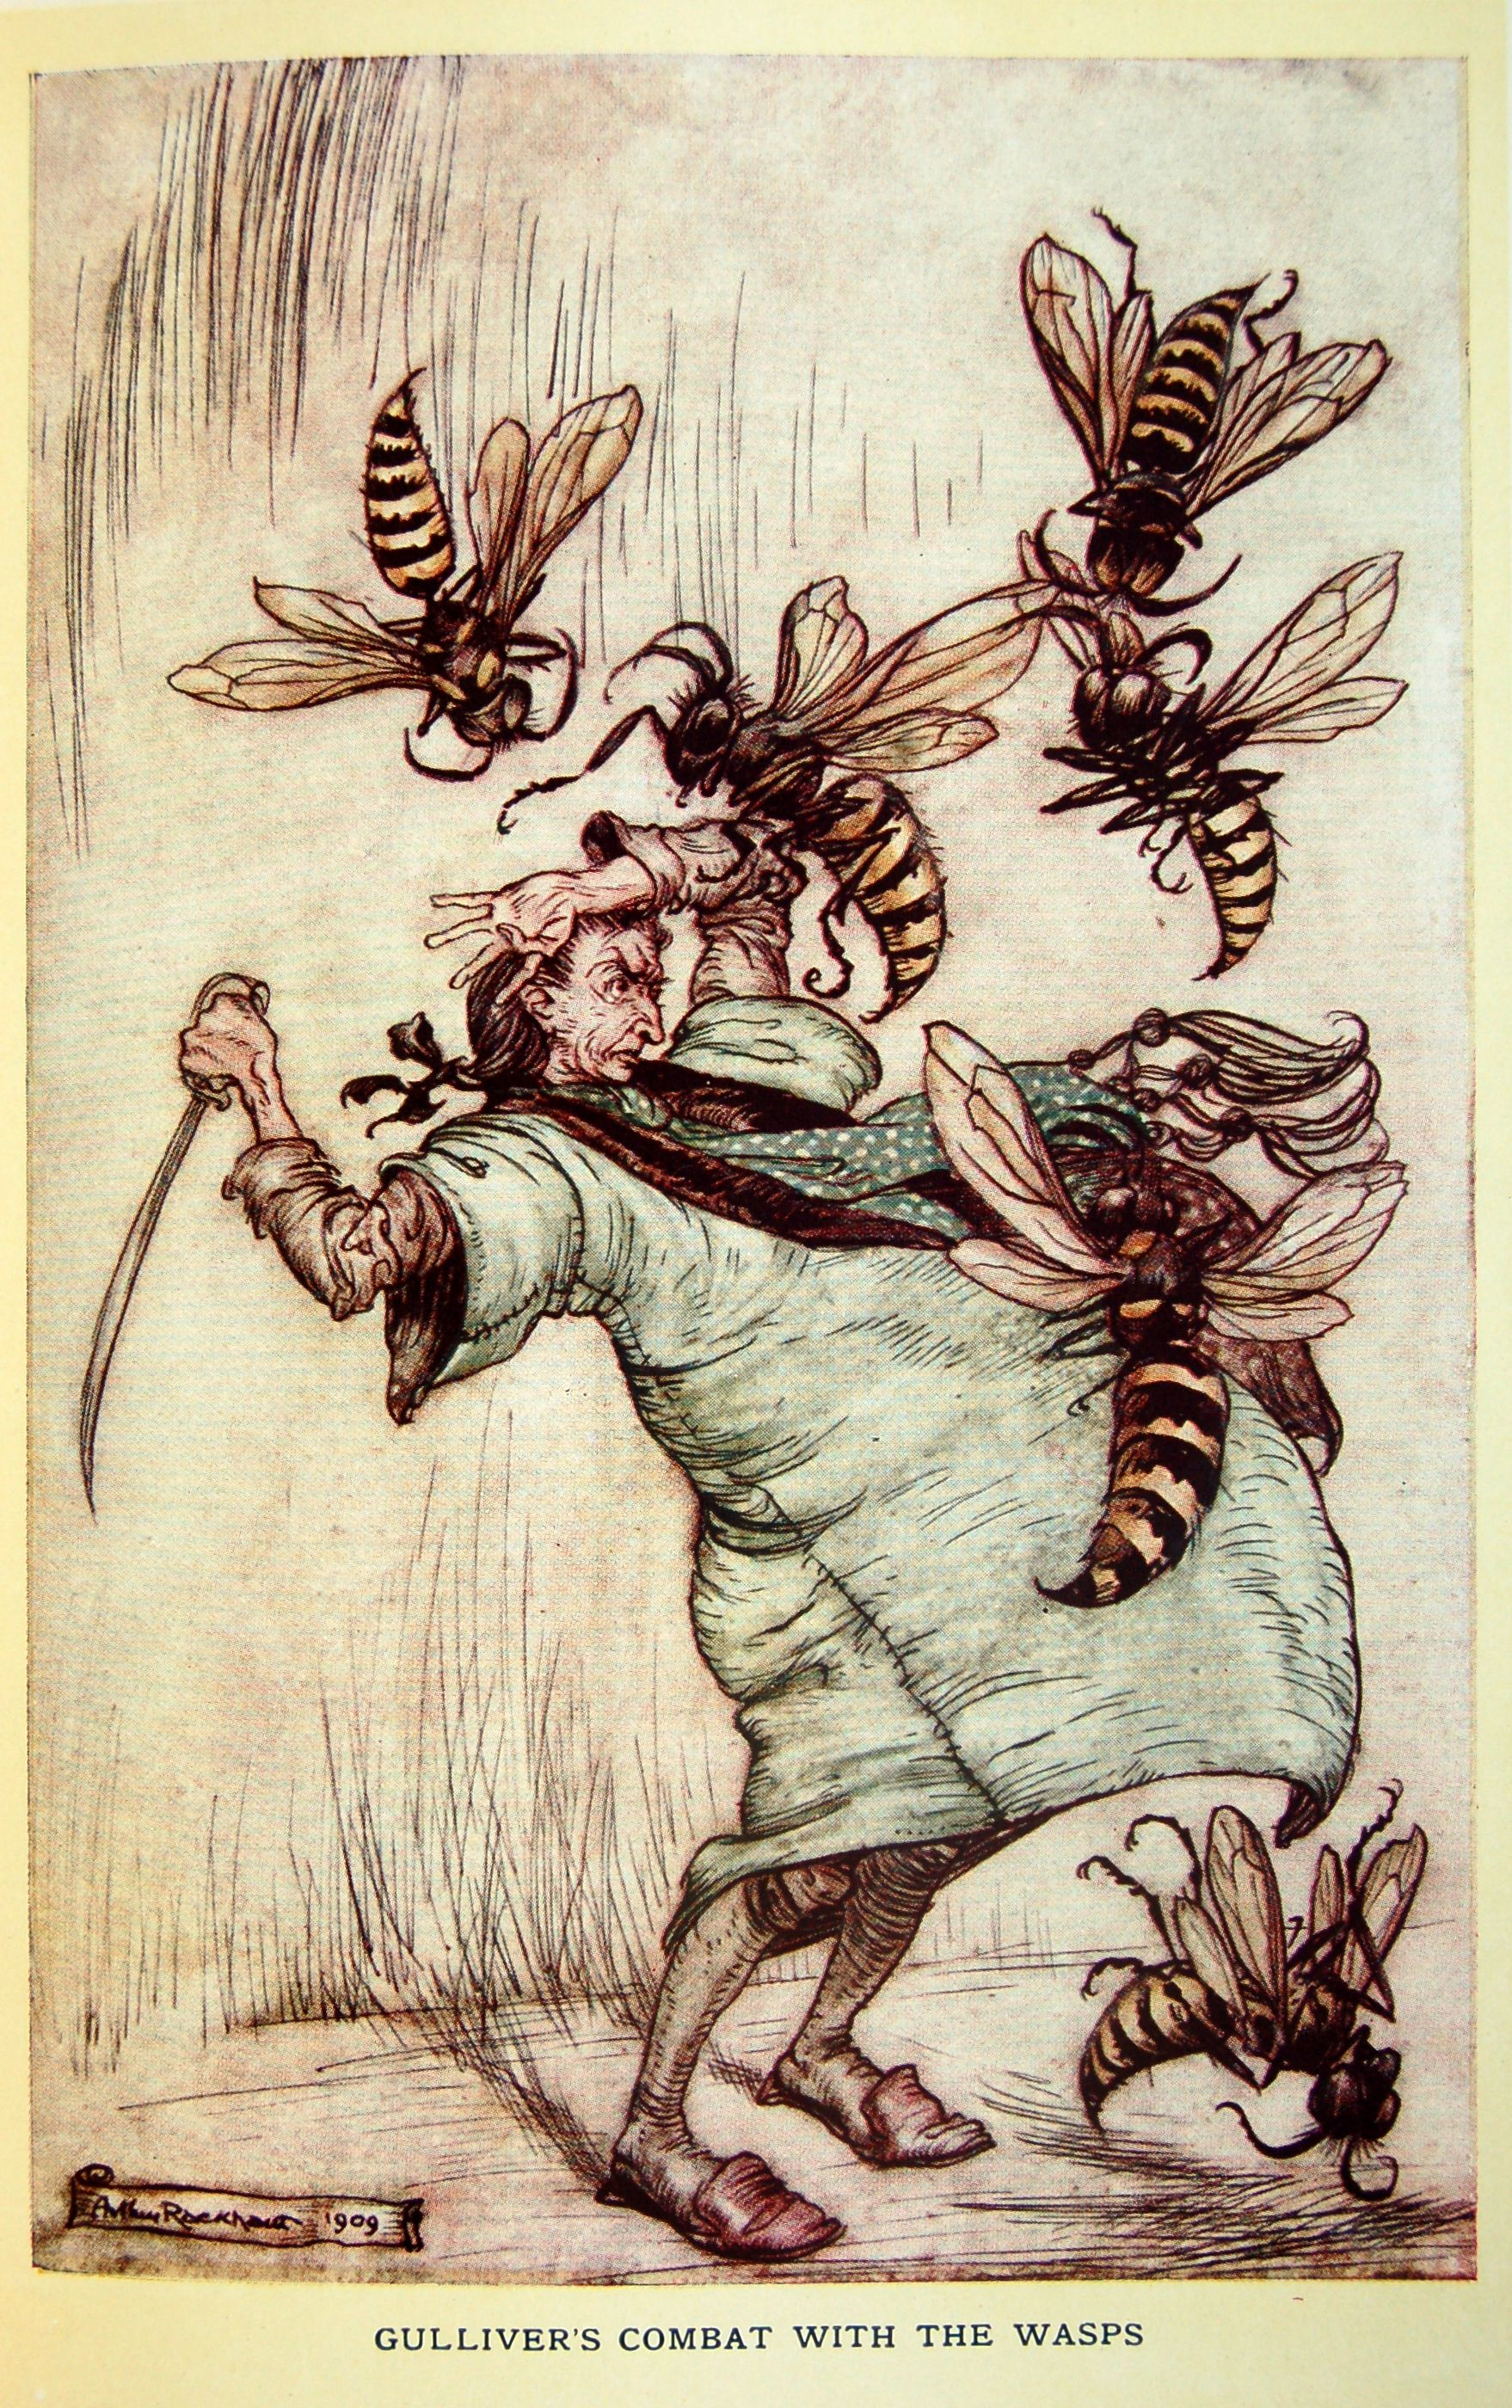 Arthur Rackham - Gulliver's Travels by Jonathan Swift (1900, reworked edition with colour plates 1909) Gulliver's combat with the wasps (10 of 17)